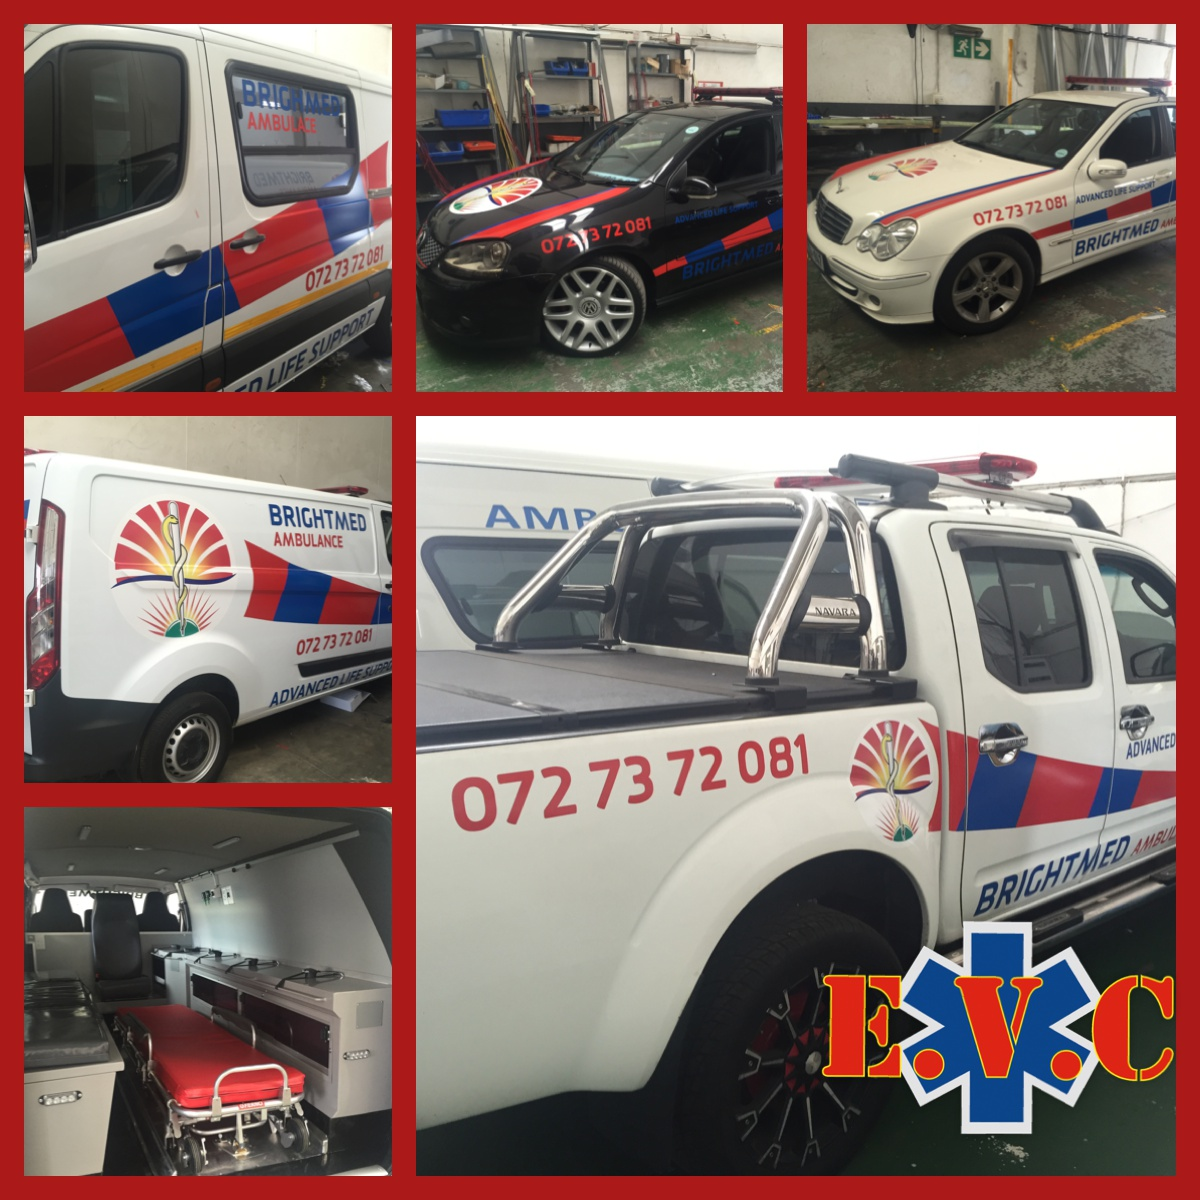 New Ambulances and Response Cars for Brightmed Ambulance